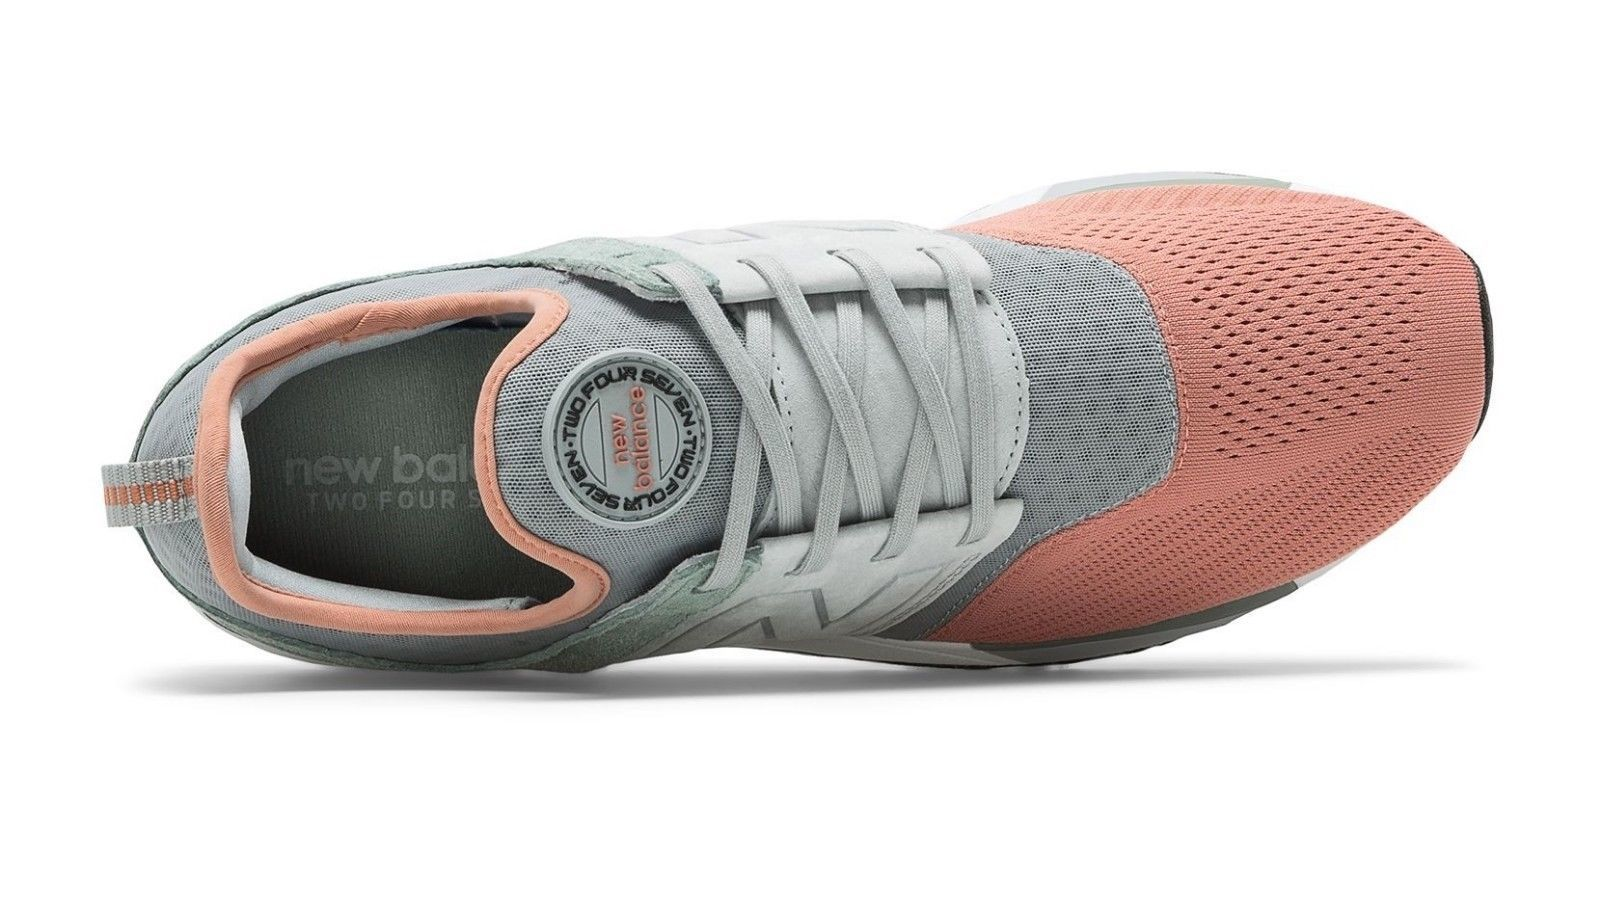 New Balance 247 Wolf Grey/Pink Running Lifestyle Shoes MRL247PK Mens Size 12